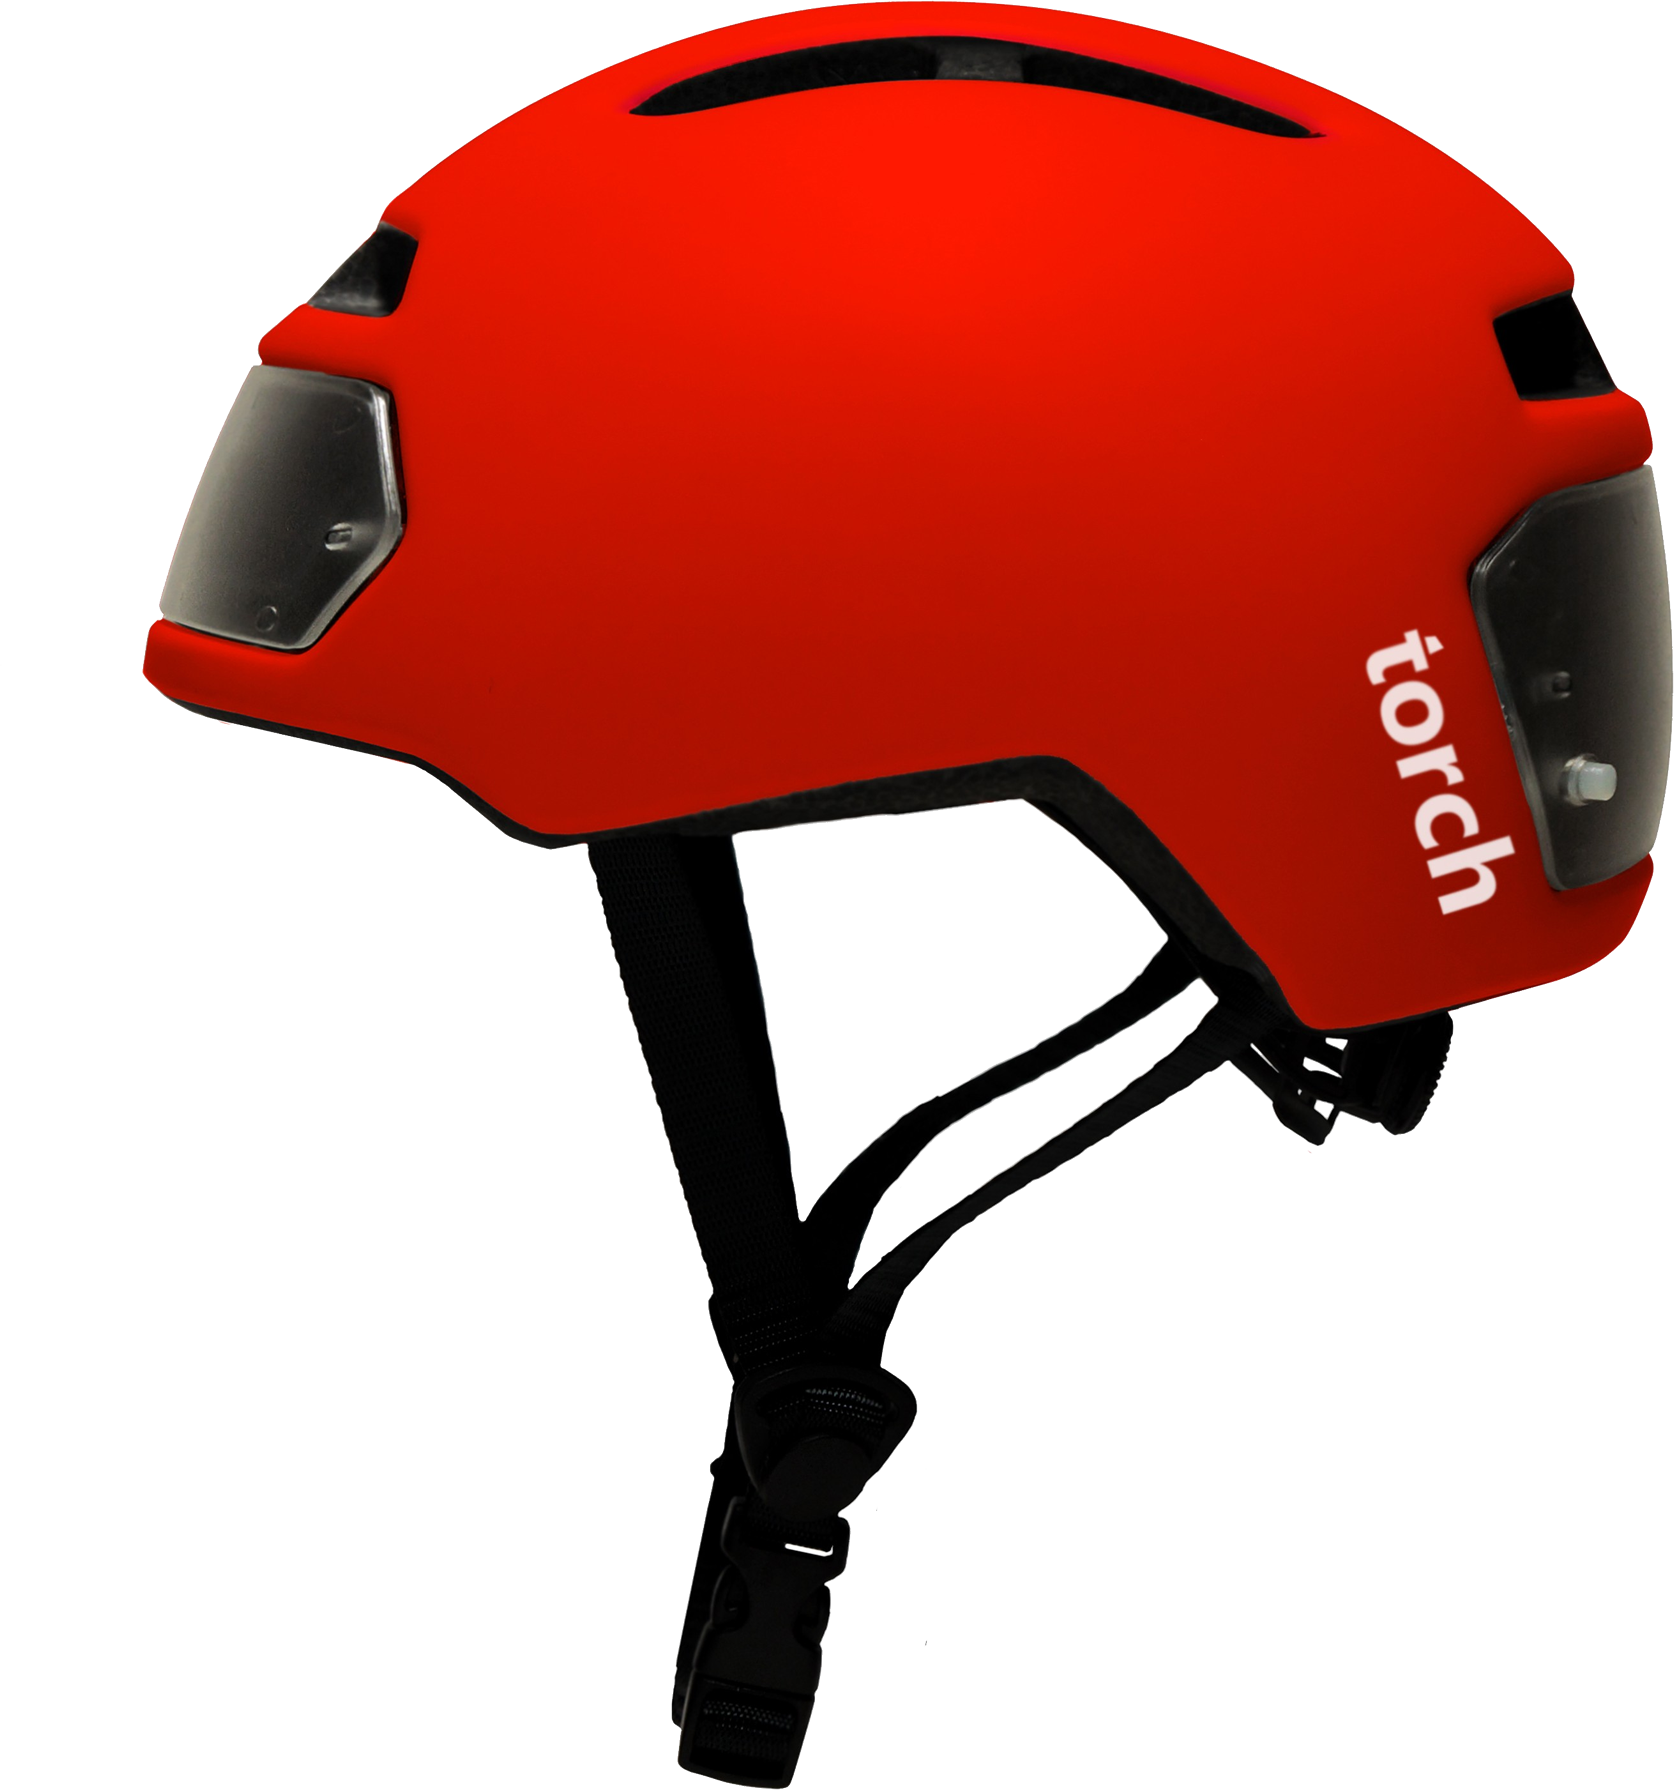 Grab and download Bicycle Helmets PNG